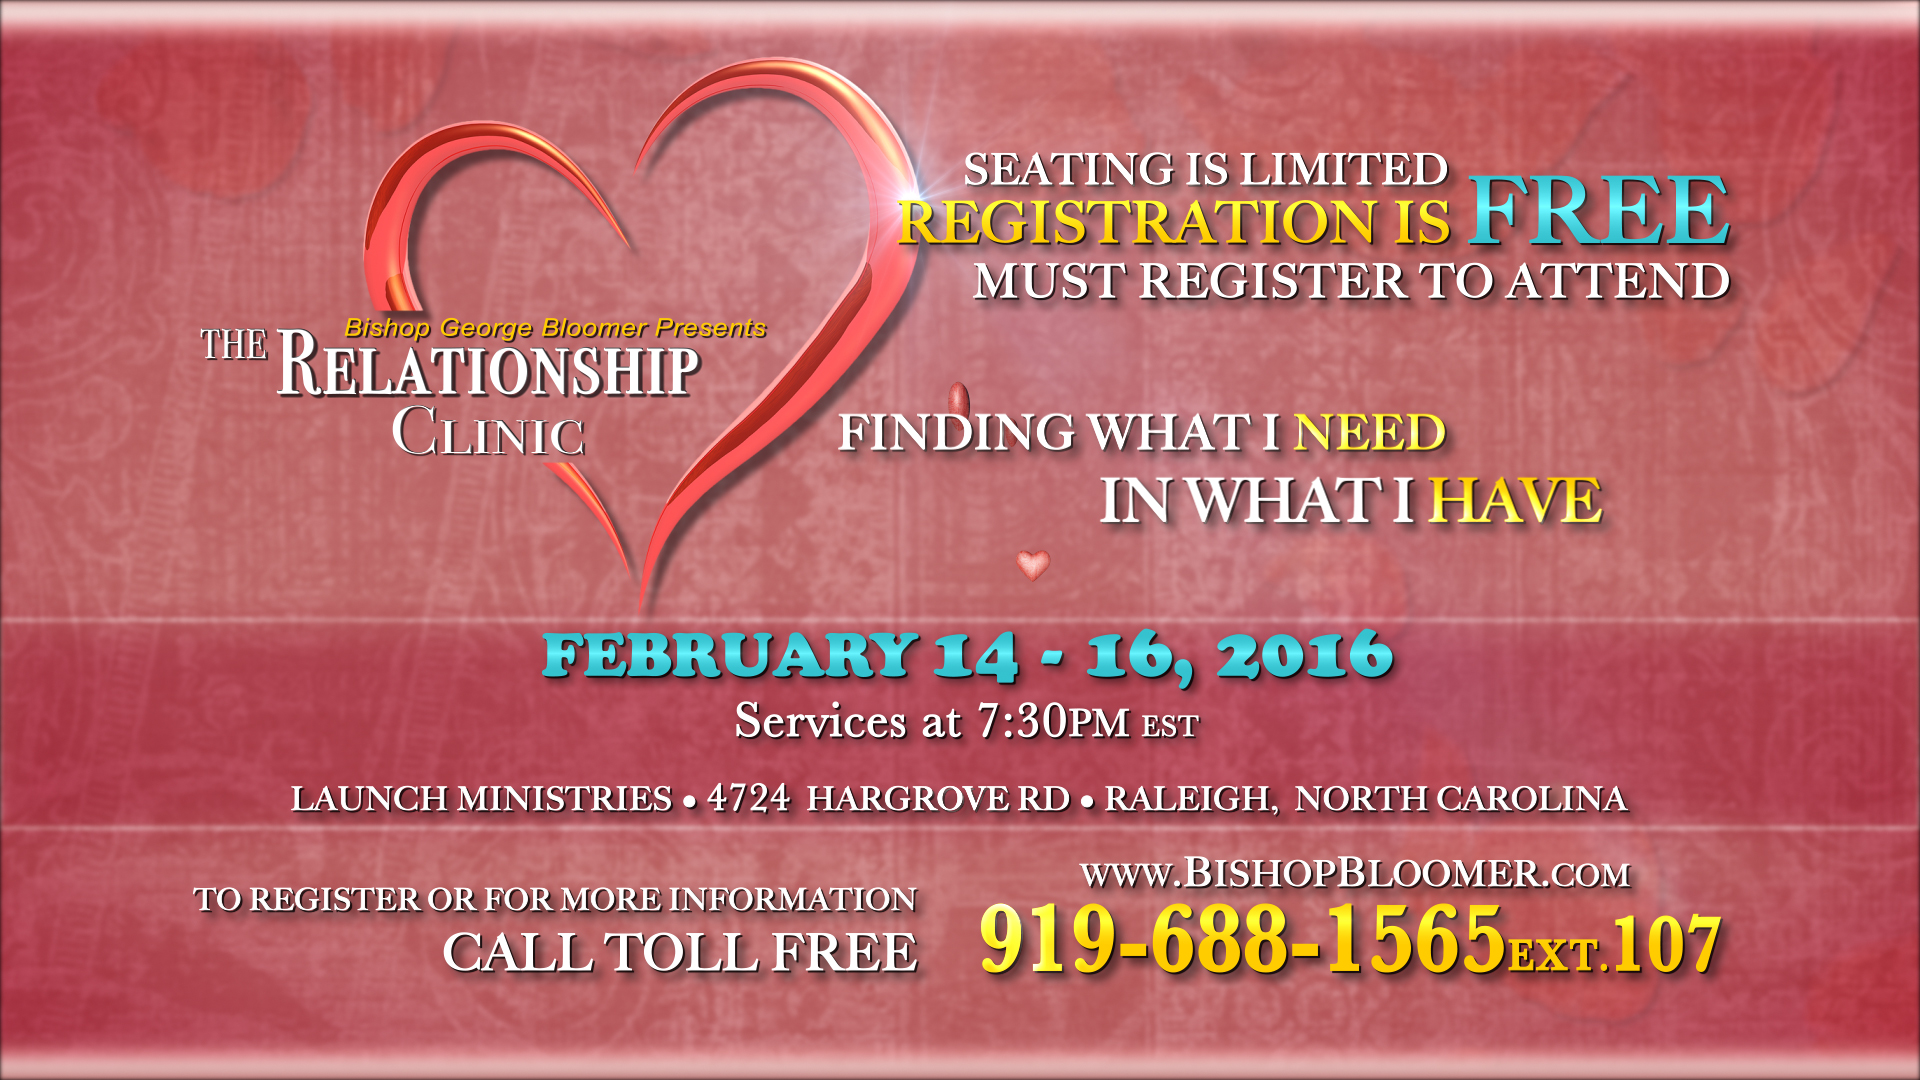 2016_February_14-16_Relationship Billboard Screen Grab